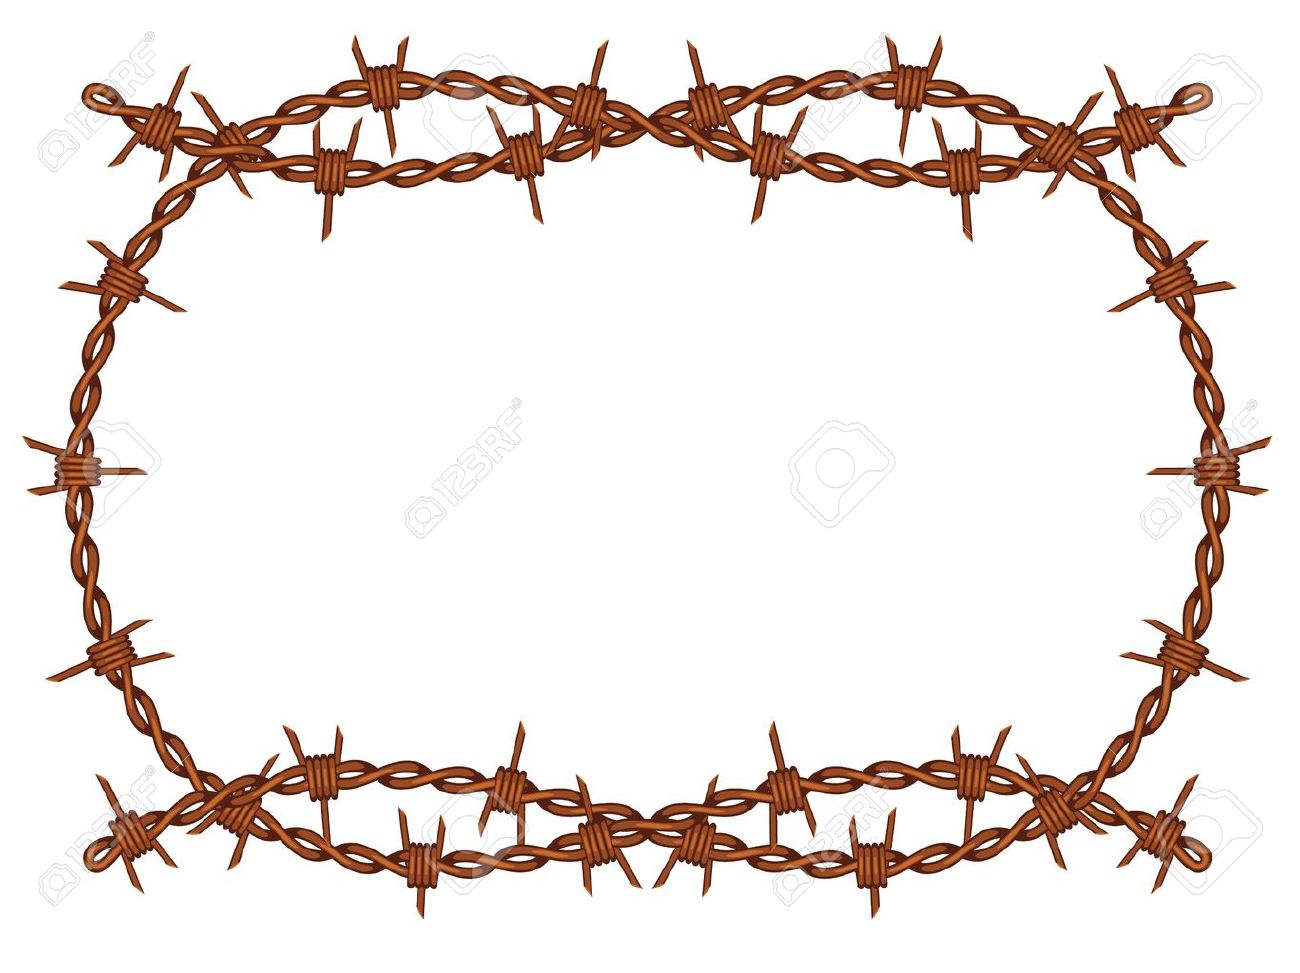 Old Rusty Barbed Wire Frame Pattern Isolated Royalty Free Cliparts ...